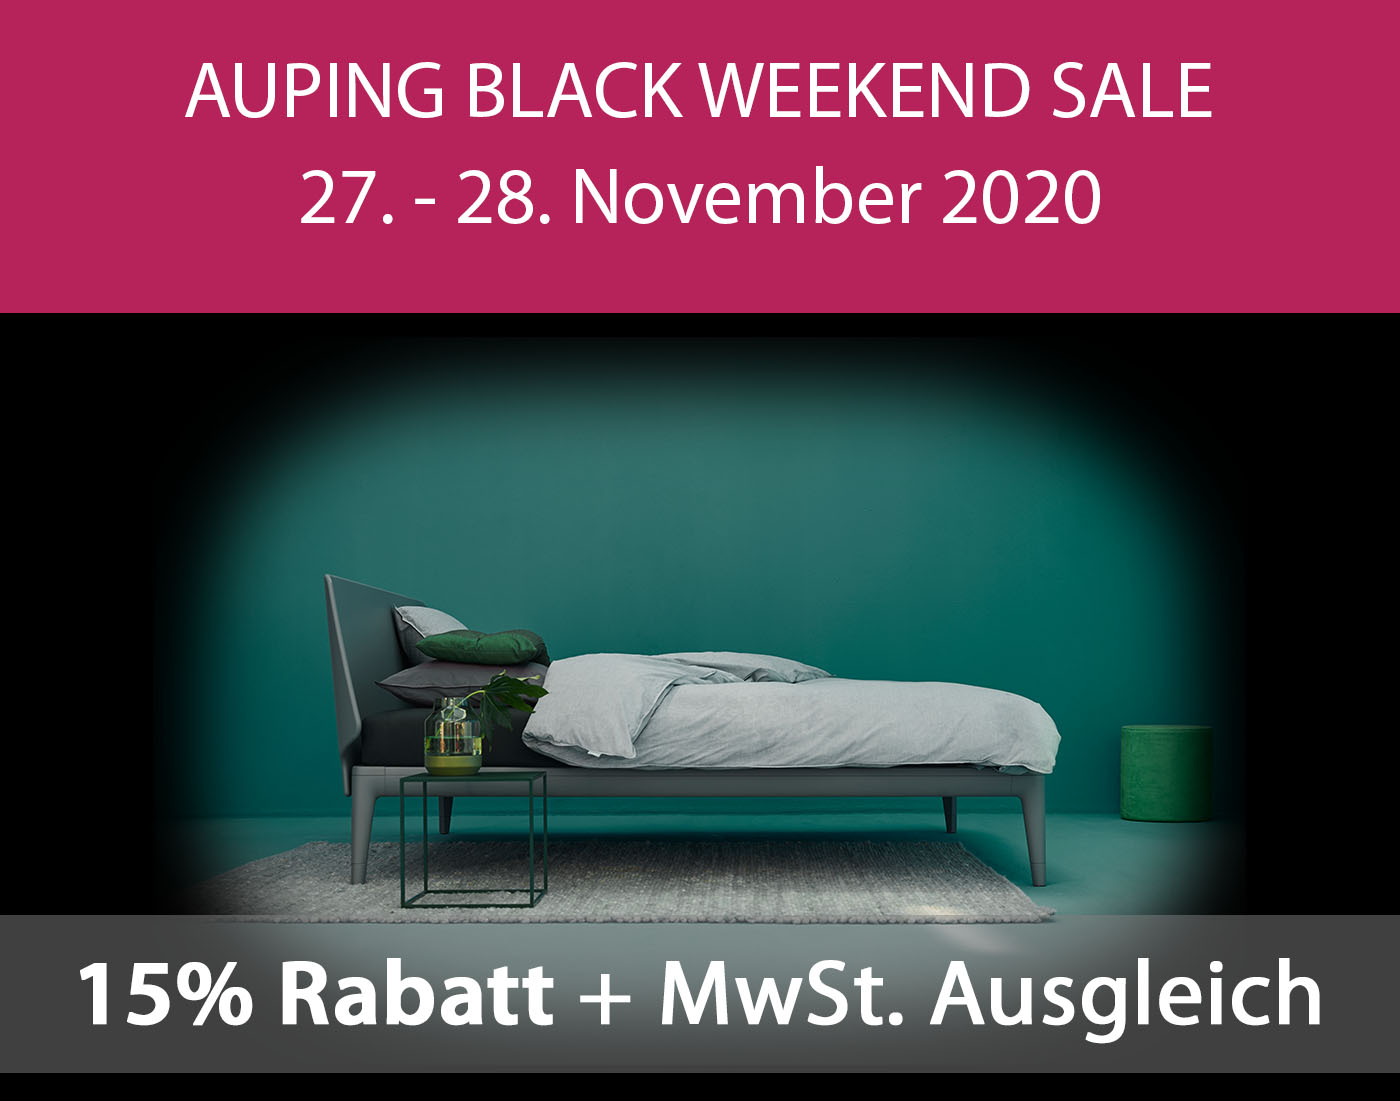 Auping Black Weekend Sale November 2020